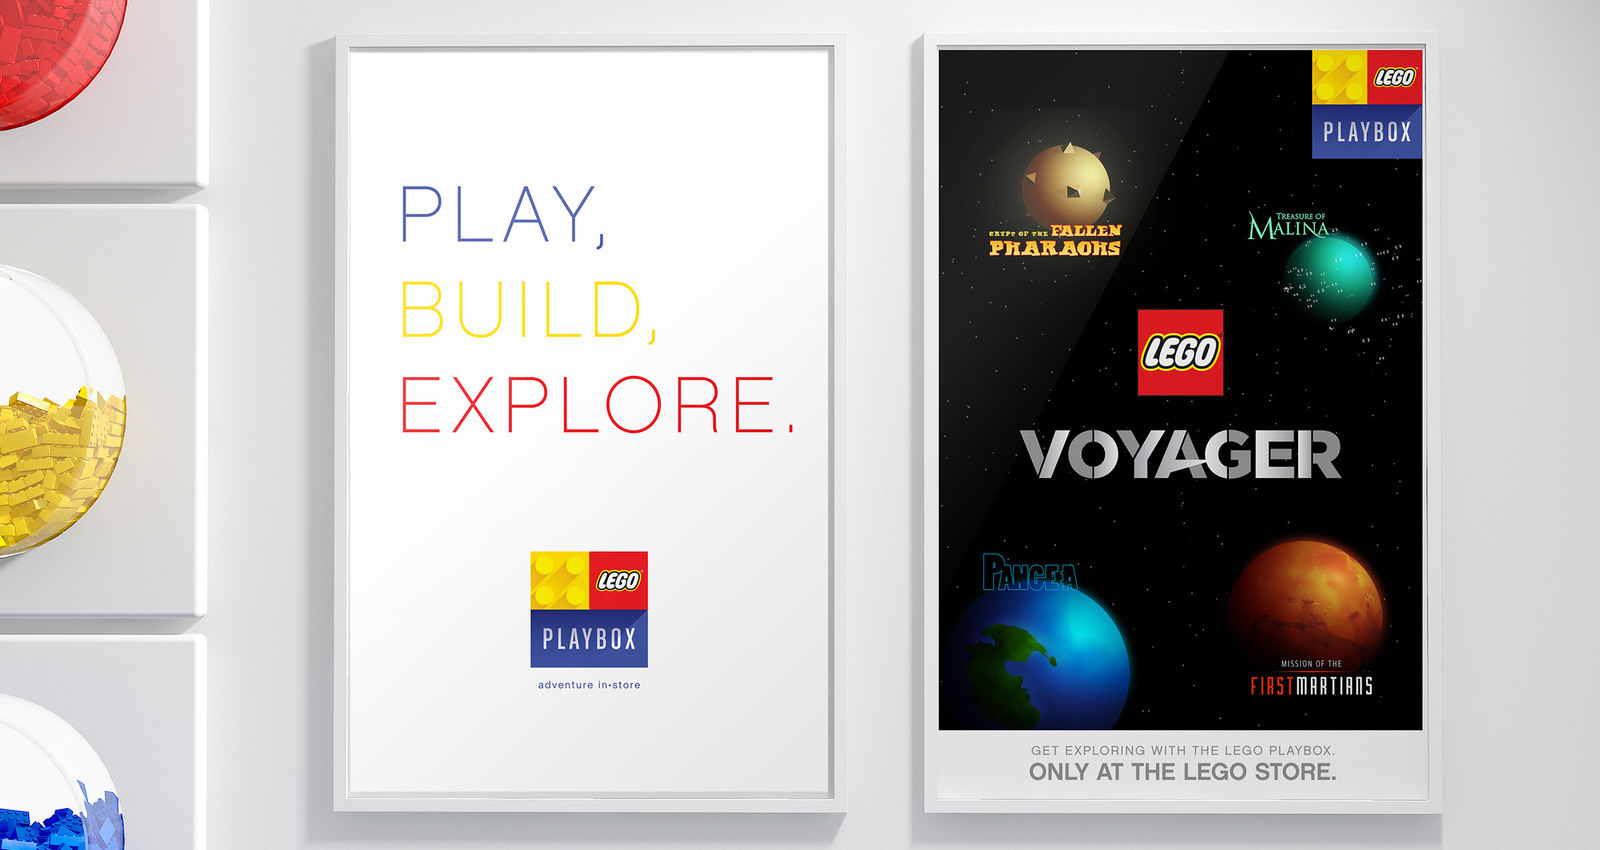 Lego PLaybox Collateral Design